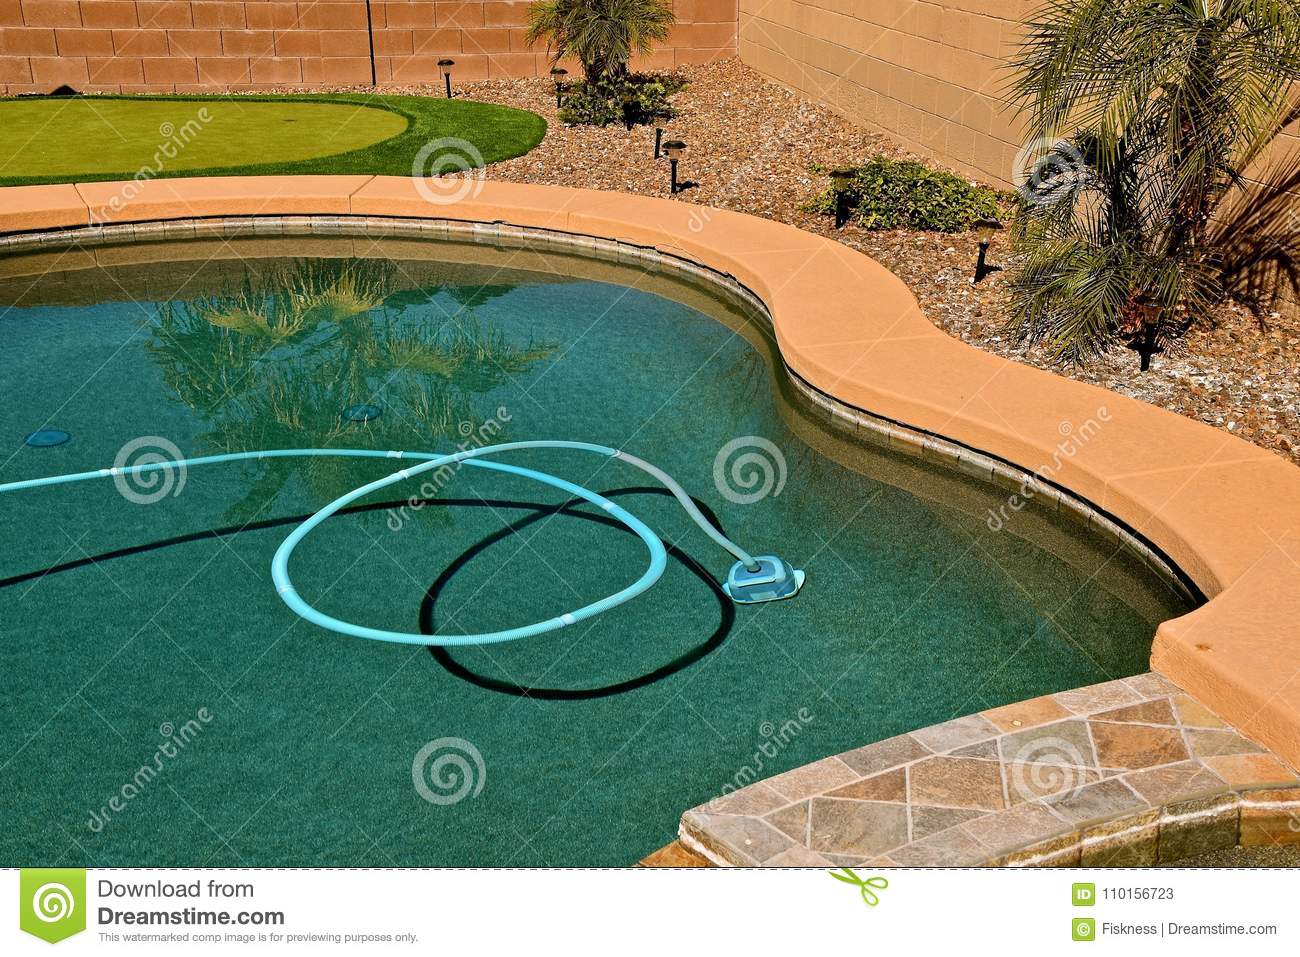 Shadow Of A Vacuum Hose In A Swimming Pool Stock Image ...